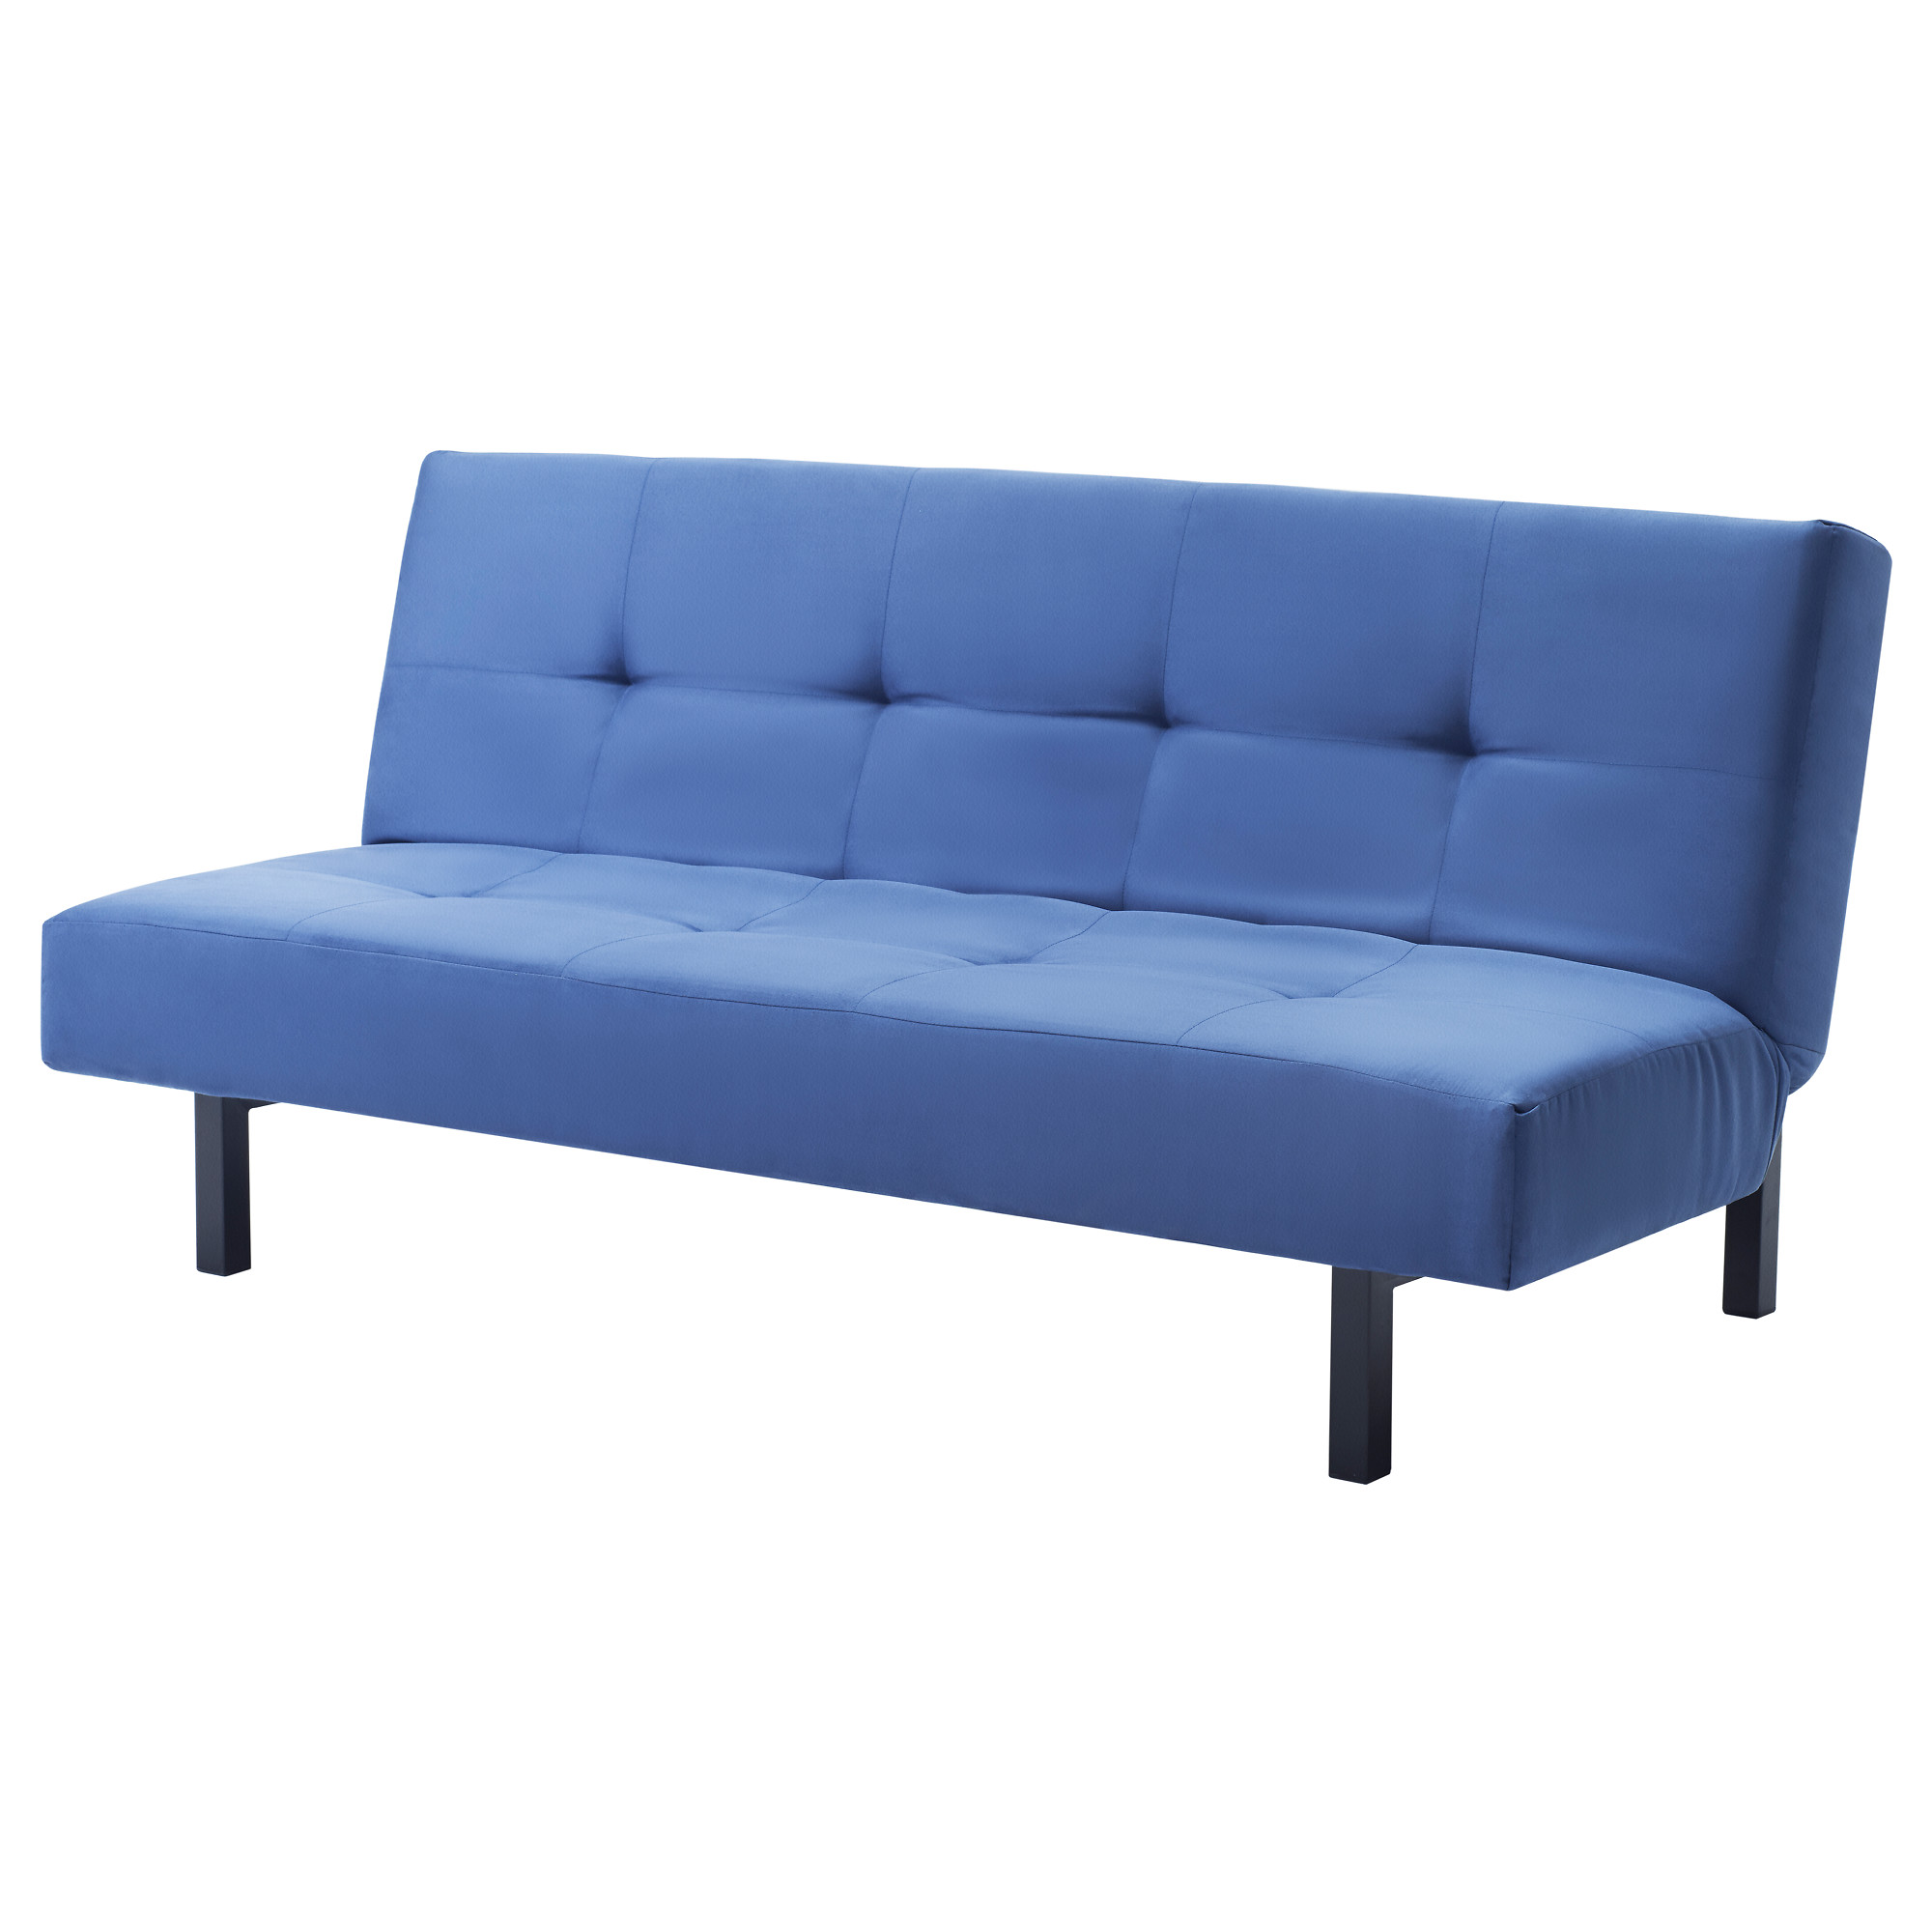 Best sofa sleepers ikea homesfeed Loveseat sofa bed